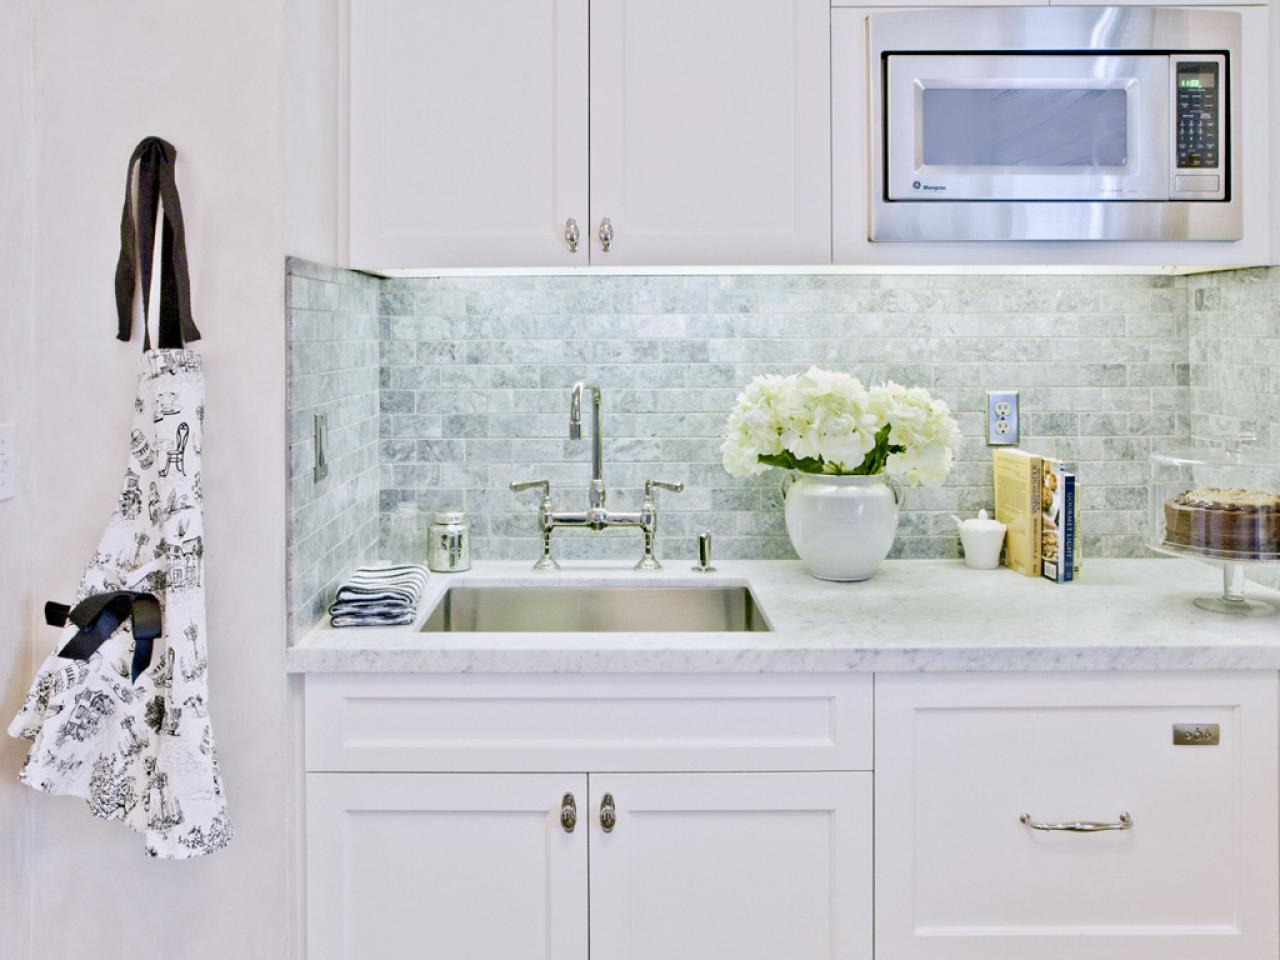 Subway tile backsplashes pictures ideas tips from hgtv hgtv - Backsplash ideas kitchen ...